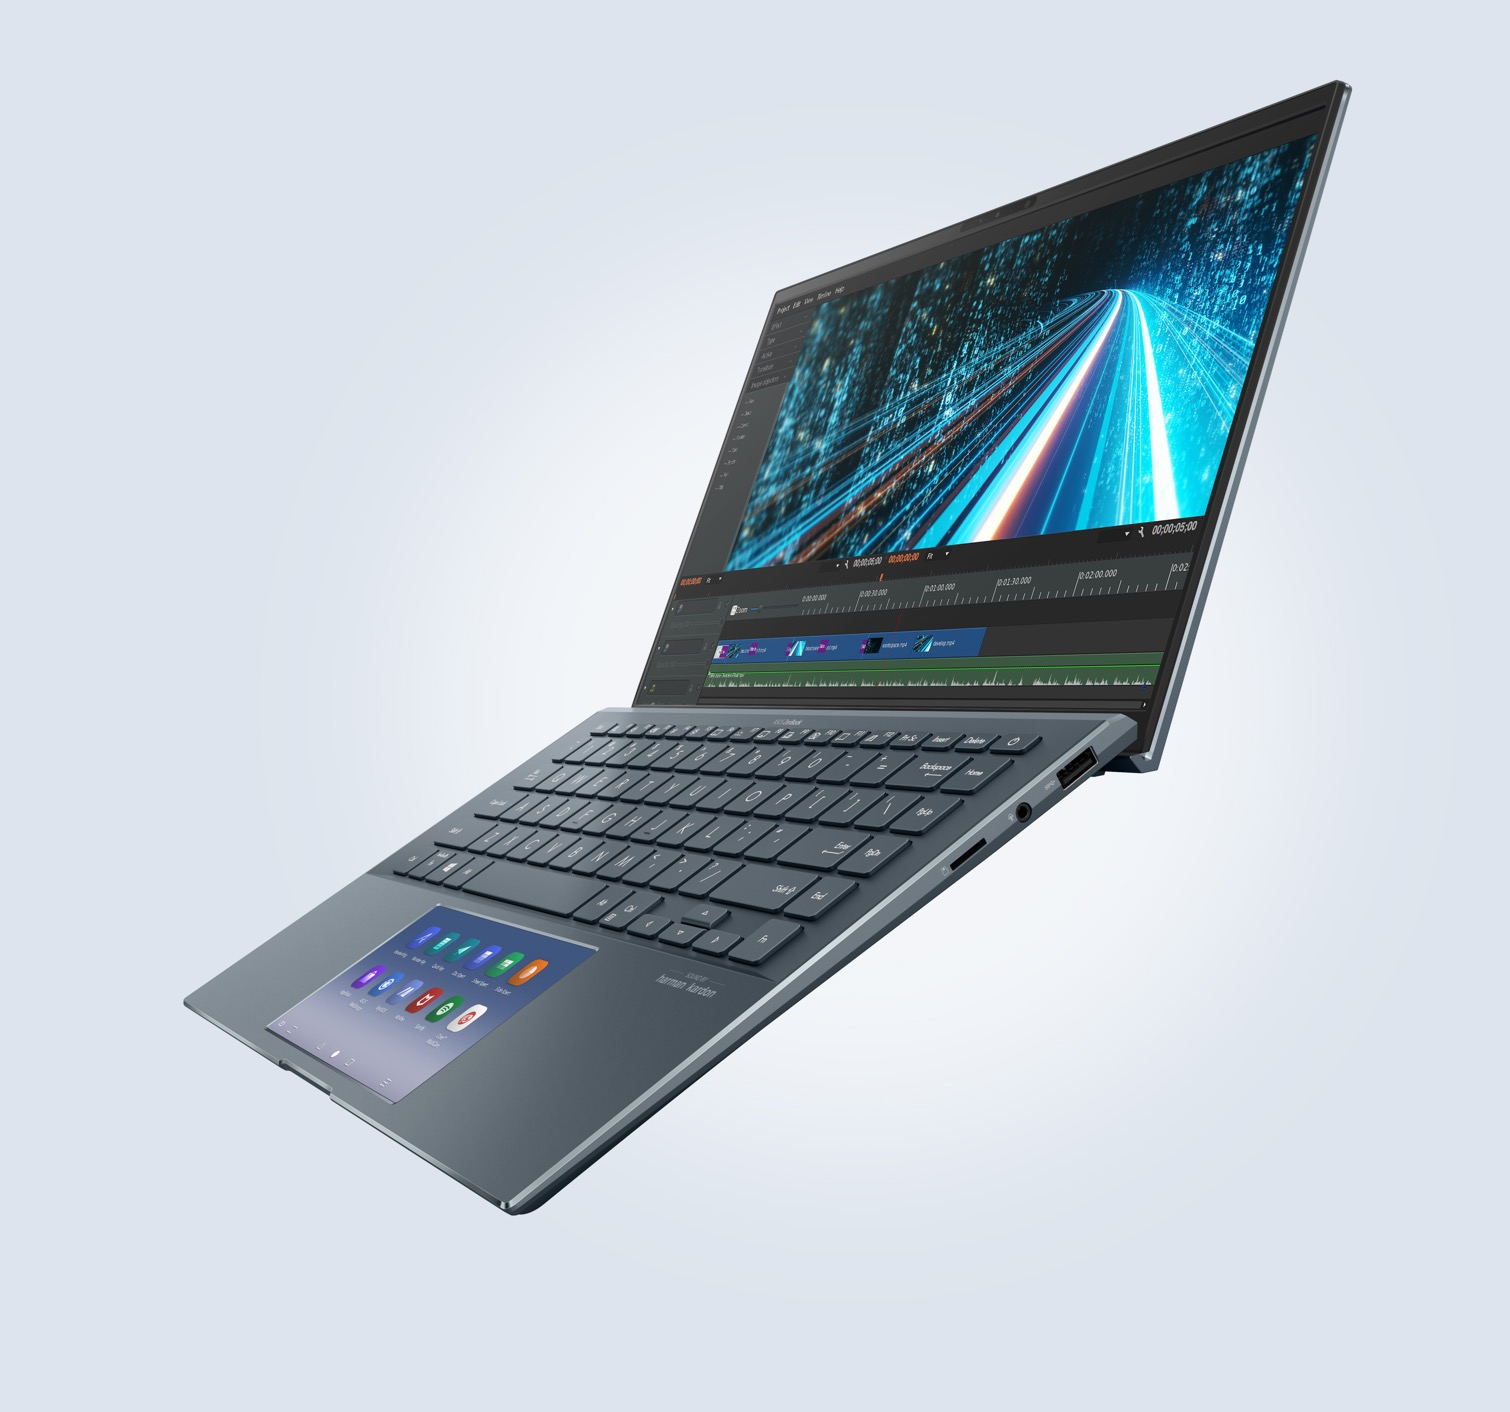 https://dlcdnimgs.asus.com/websites/global/products/mpw4fh5ouhgwkymj/v2/features/images/large/1x/s10.jpg